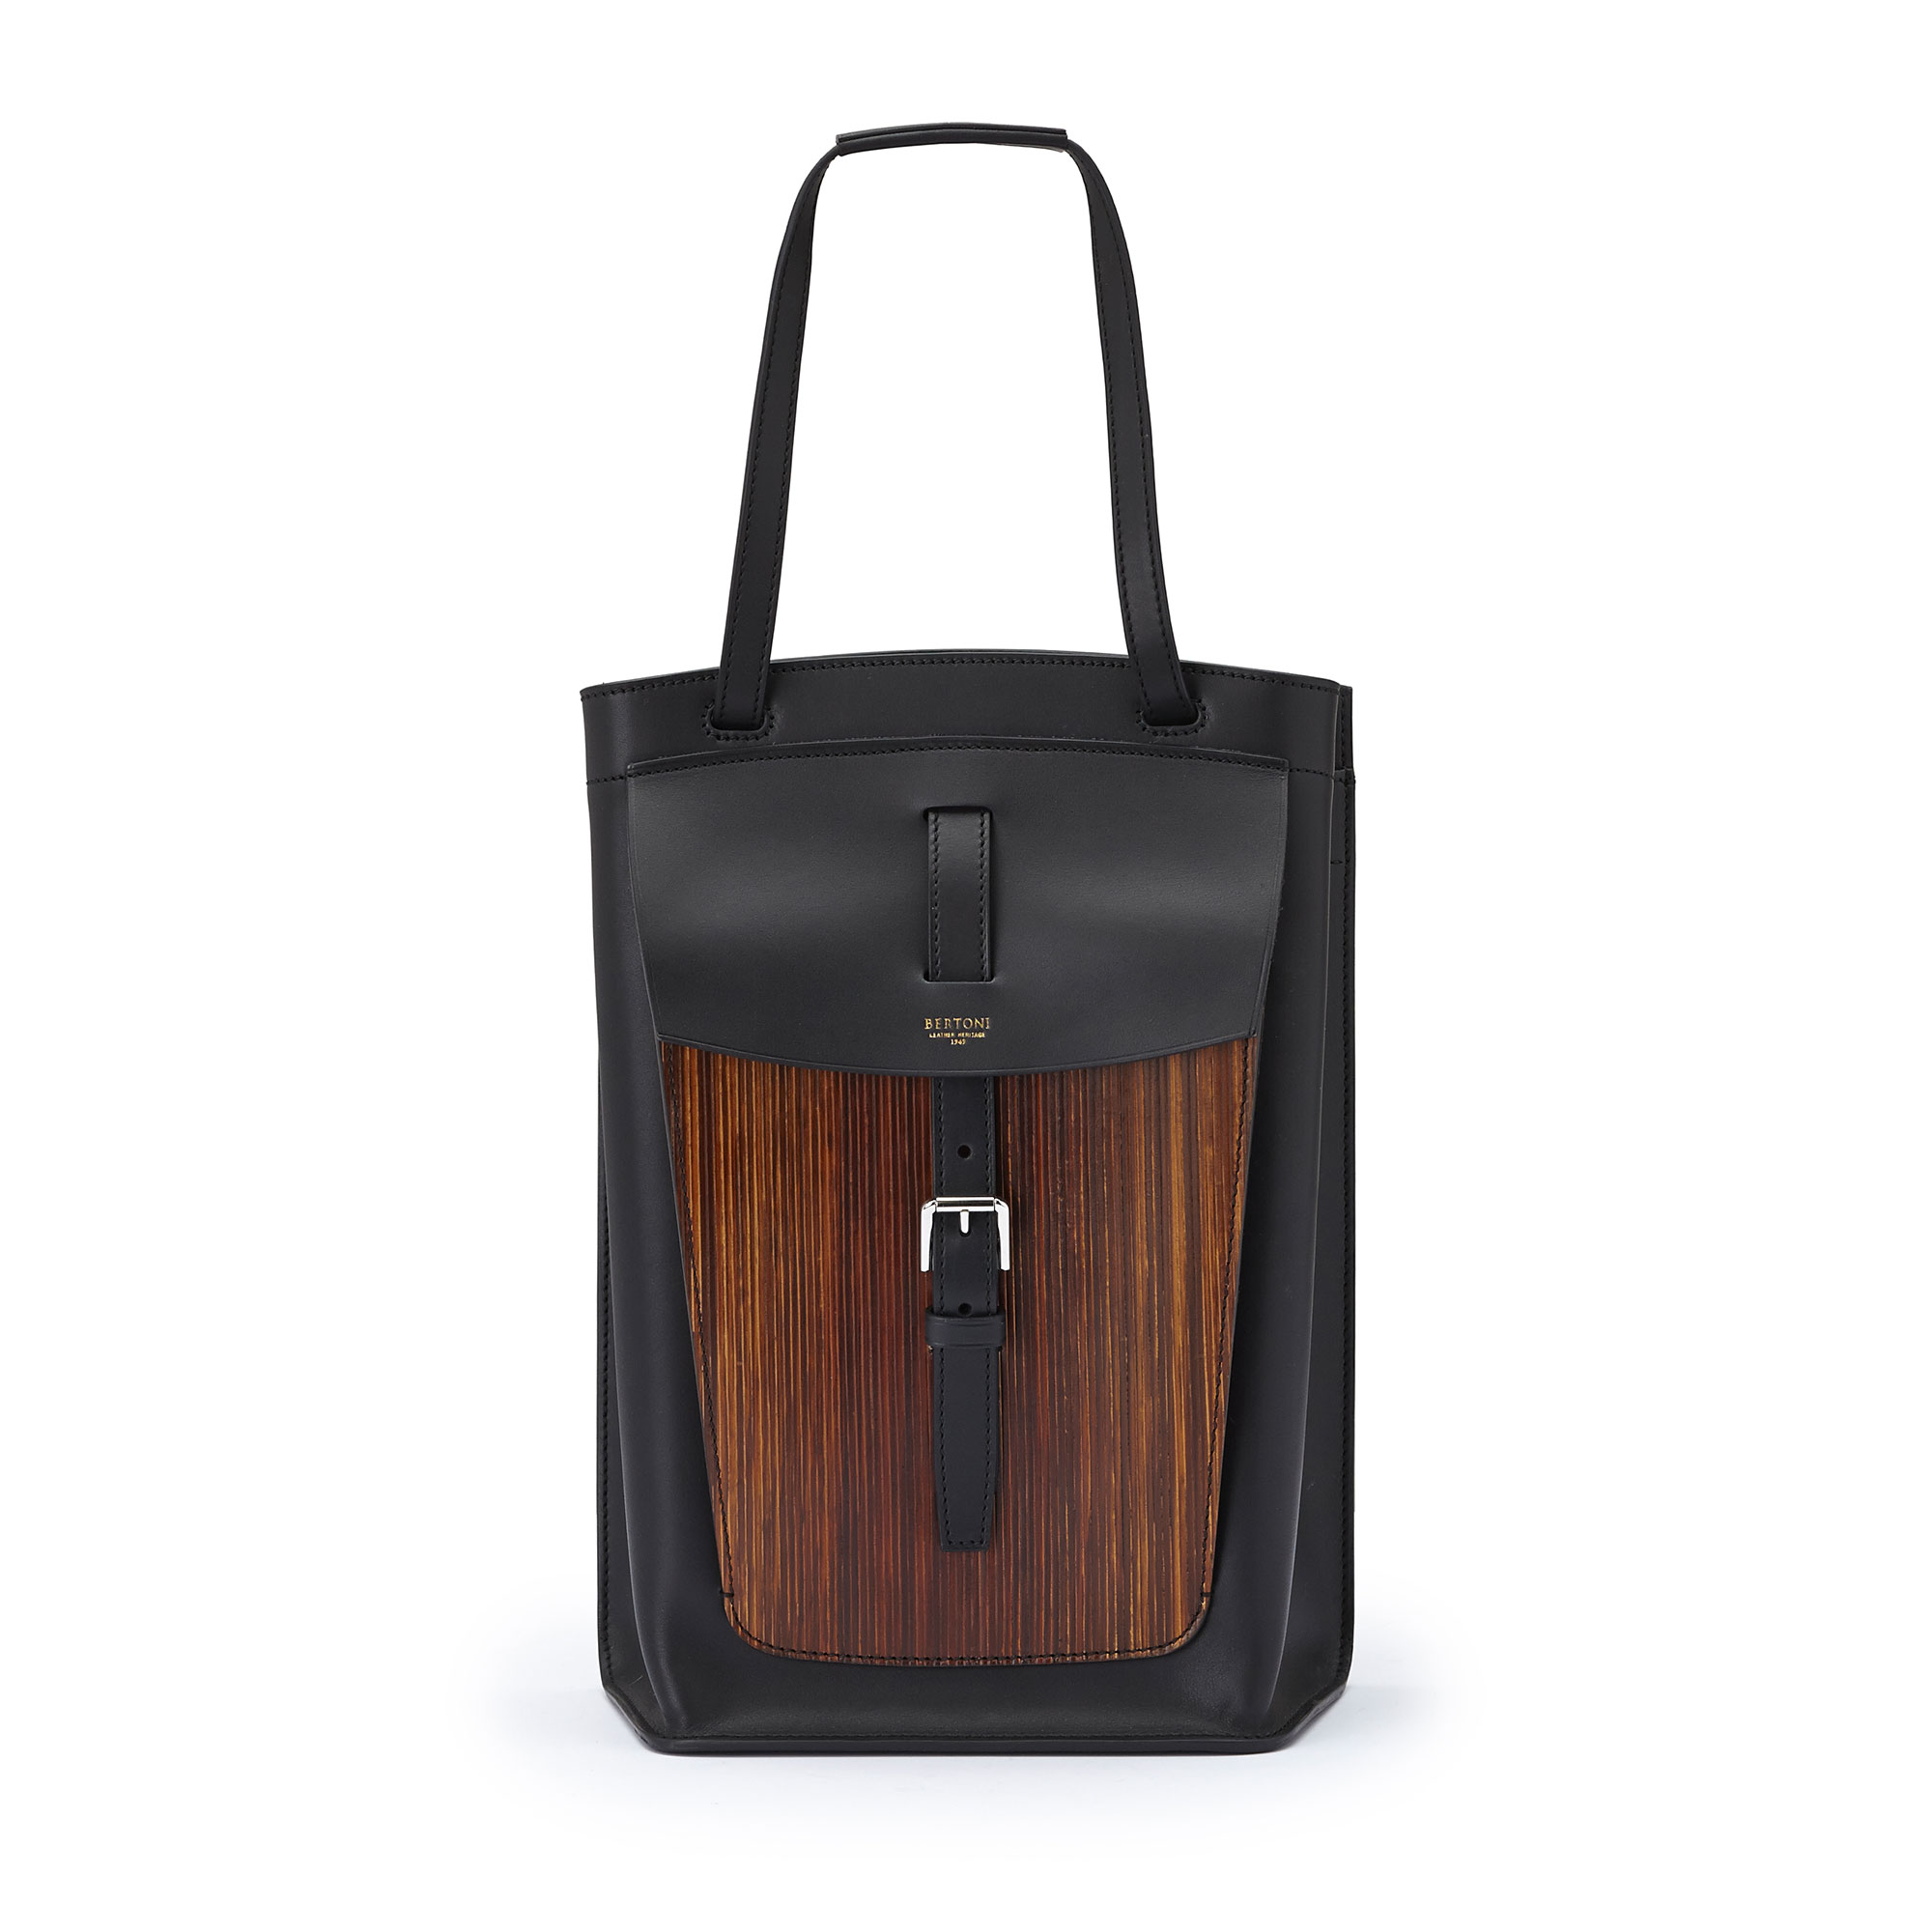 The black french calf, wood leather Arizona bucket bag by Bertoni 1949 01